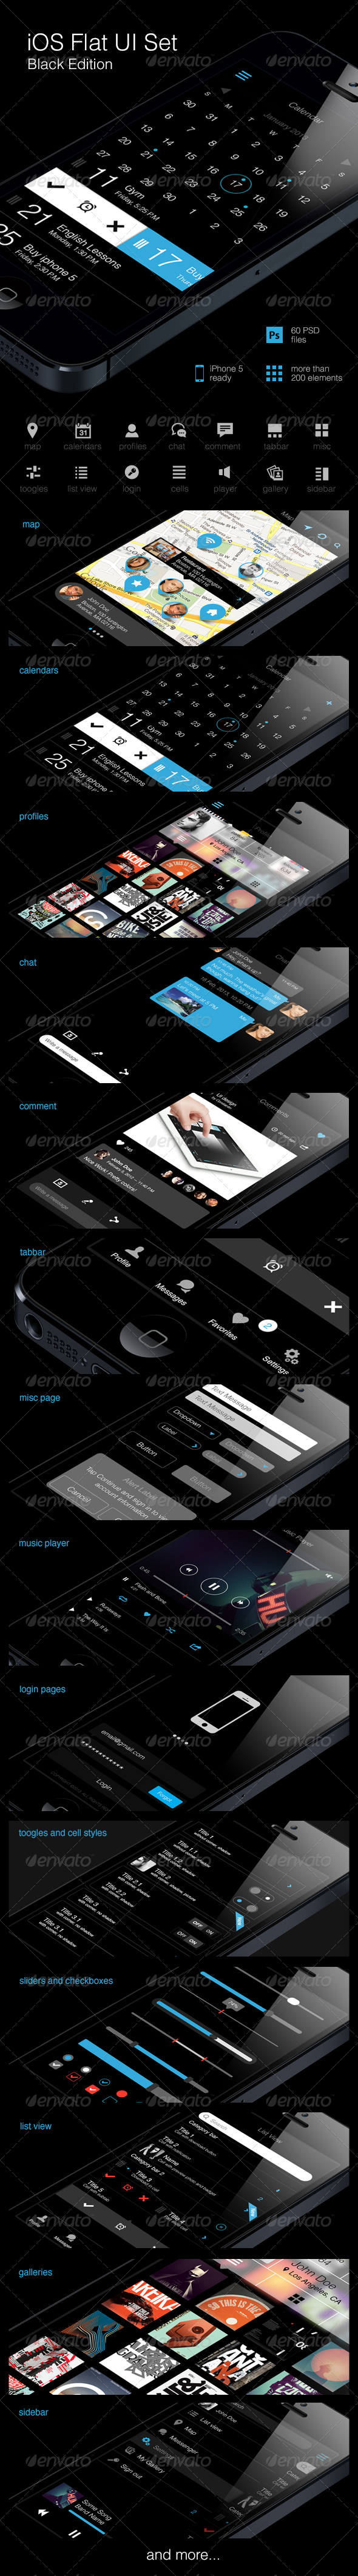 iOS Flat UI Set Black Edition Vol. 2 - User Interfaces Web Elements